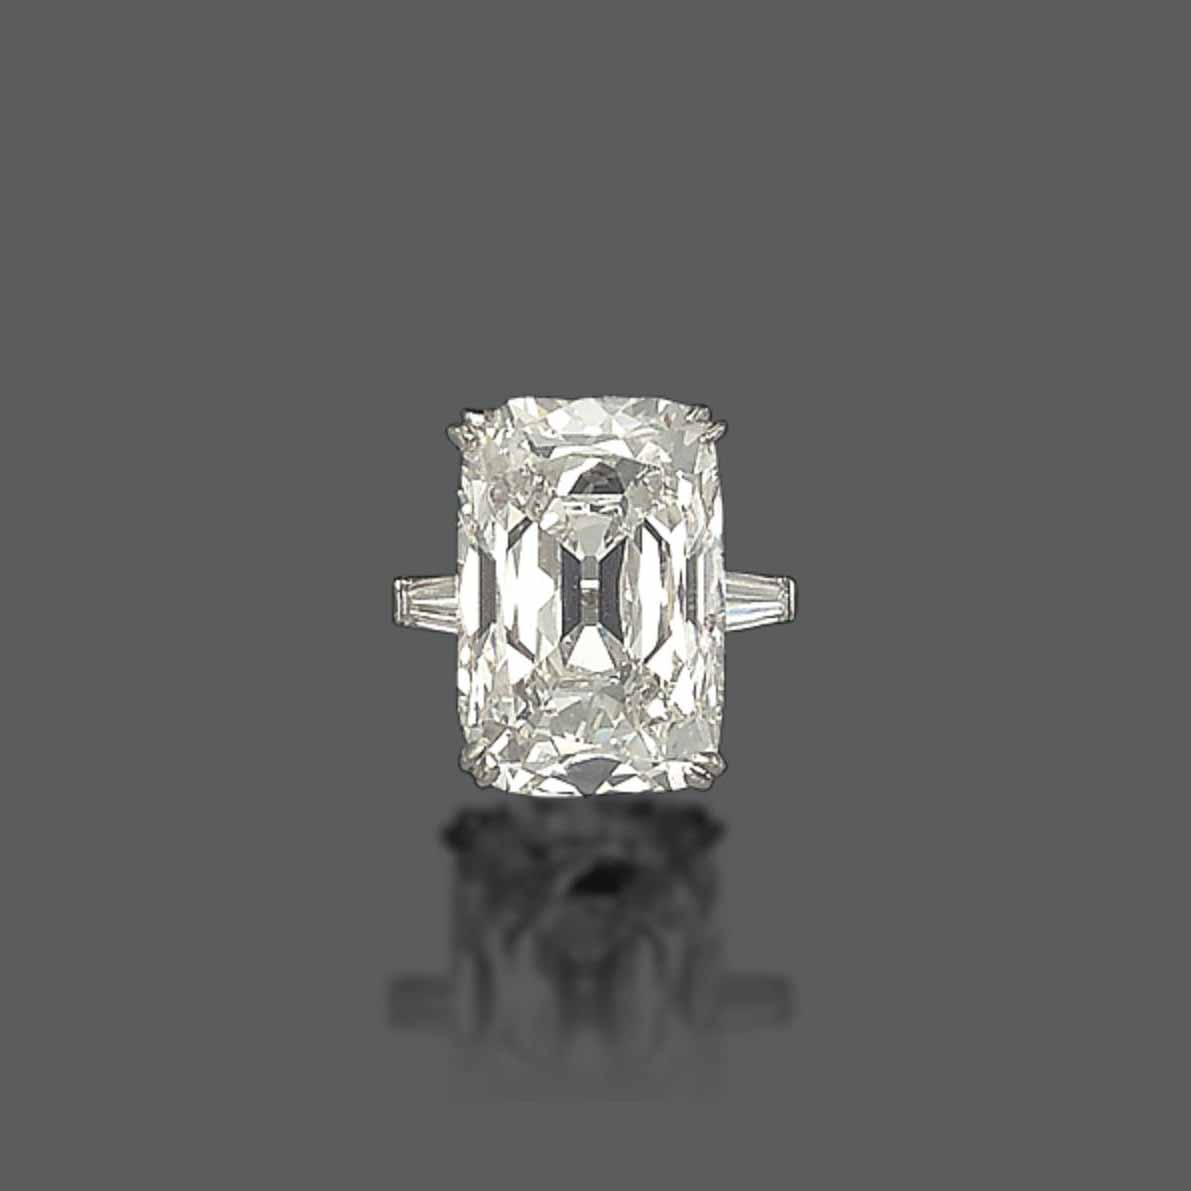 AN ELEGANT DIAMOND RING, BY CUSI